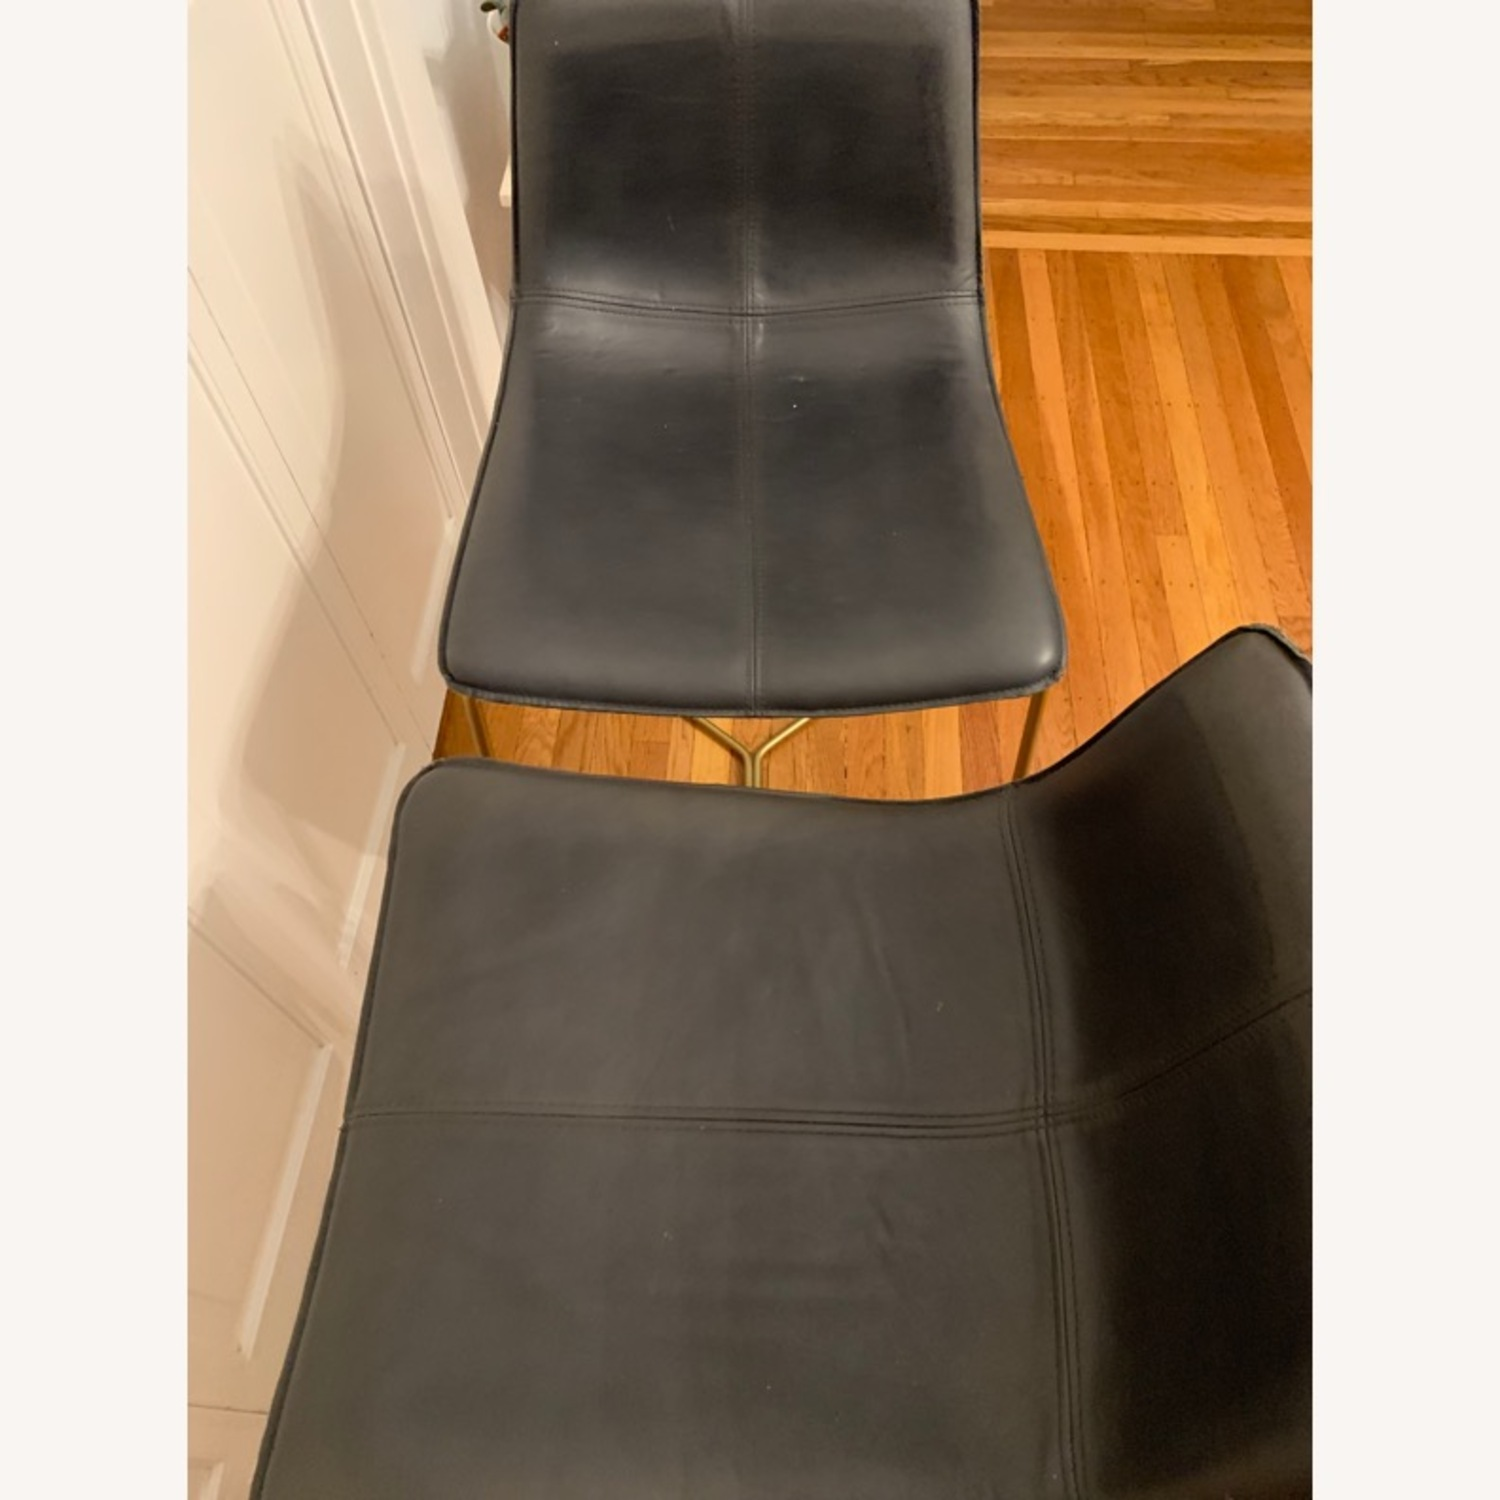 West Elm Slope Leather Counter Stools - image-3